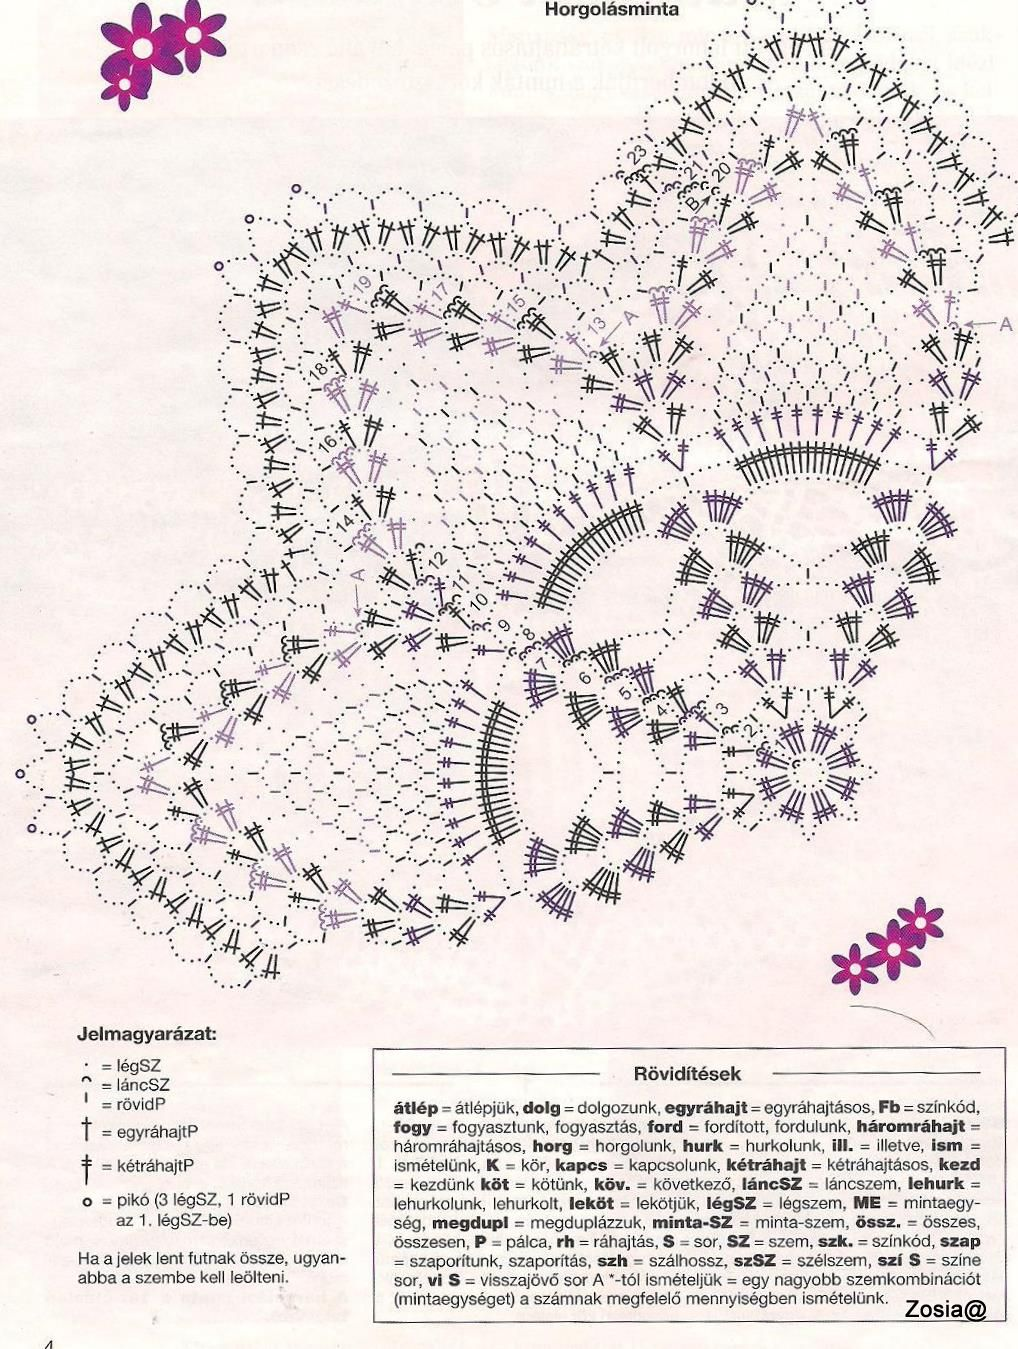 Pineapple crochet doilies diagram schematic wiring diagram pin by barbara wlochinska on crochet pinterest crochet crochet rh pinterest co uk geometric crochet patterns diagrams geometric crochet patterns diagrams ccuart Choice Image